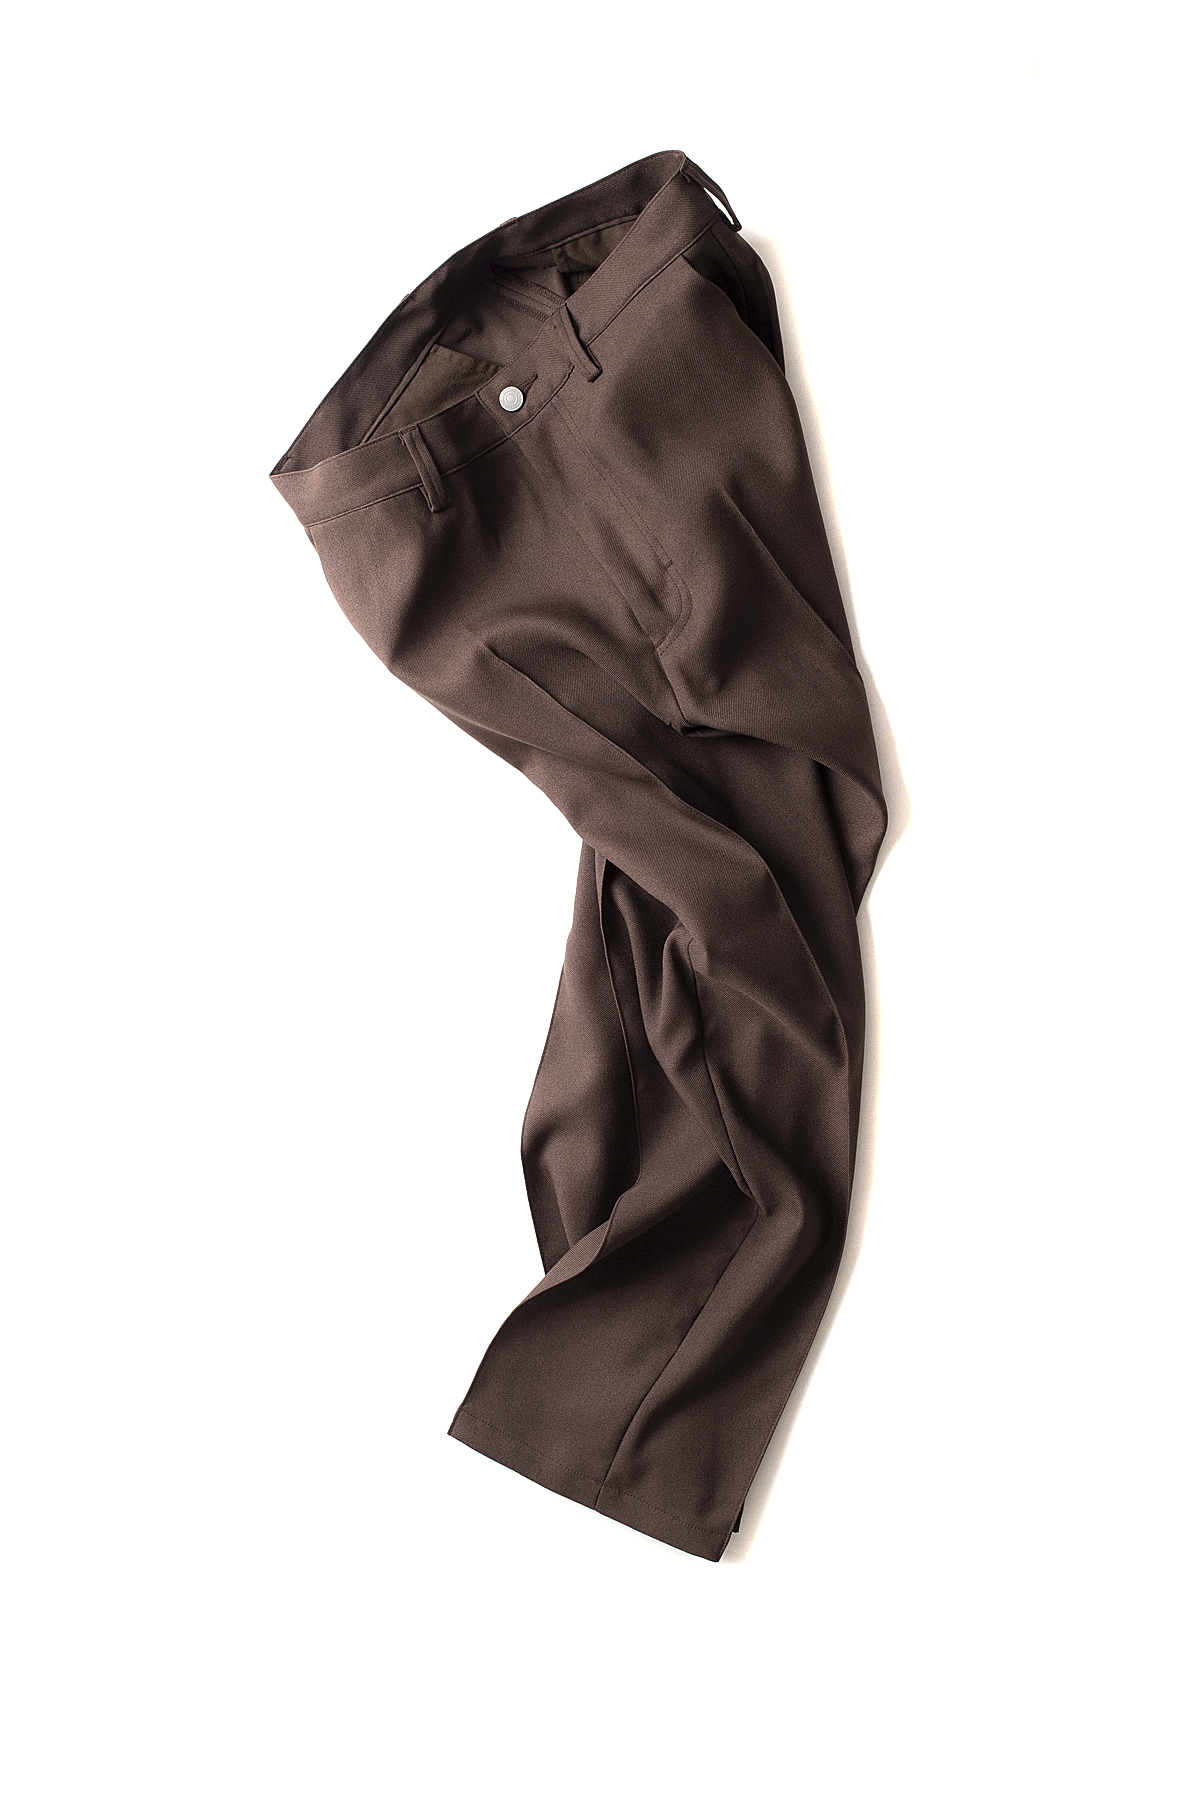 EEL : Star Slacks (Brown)